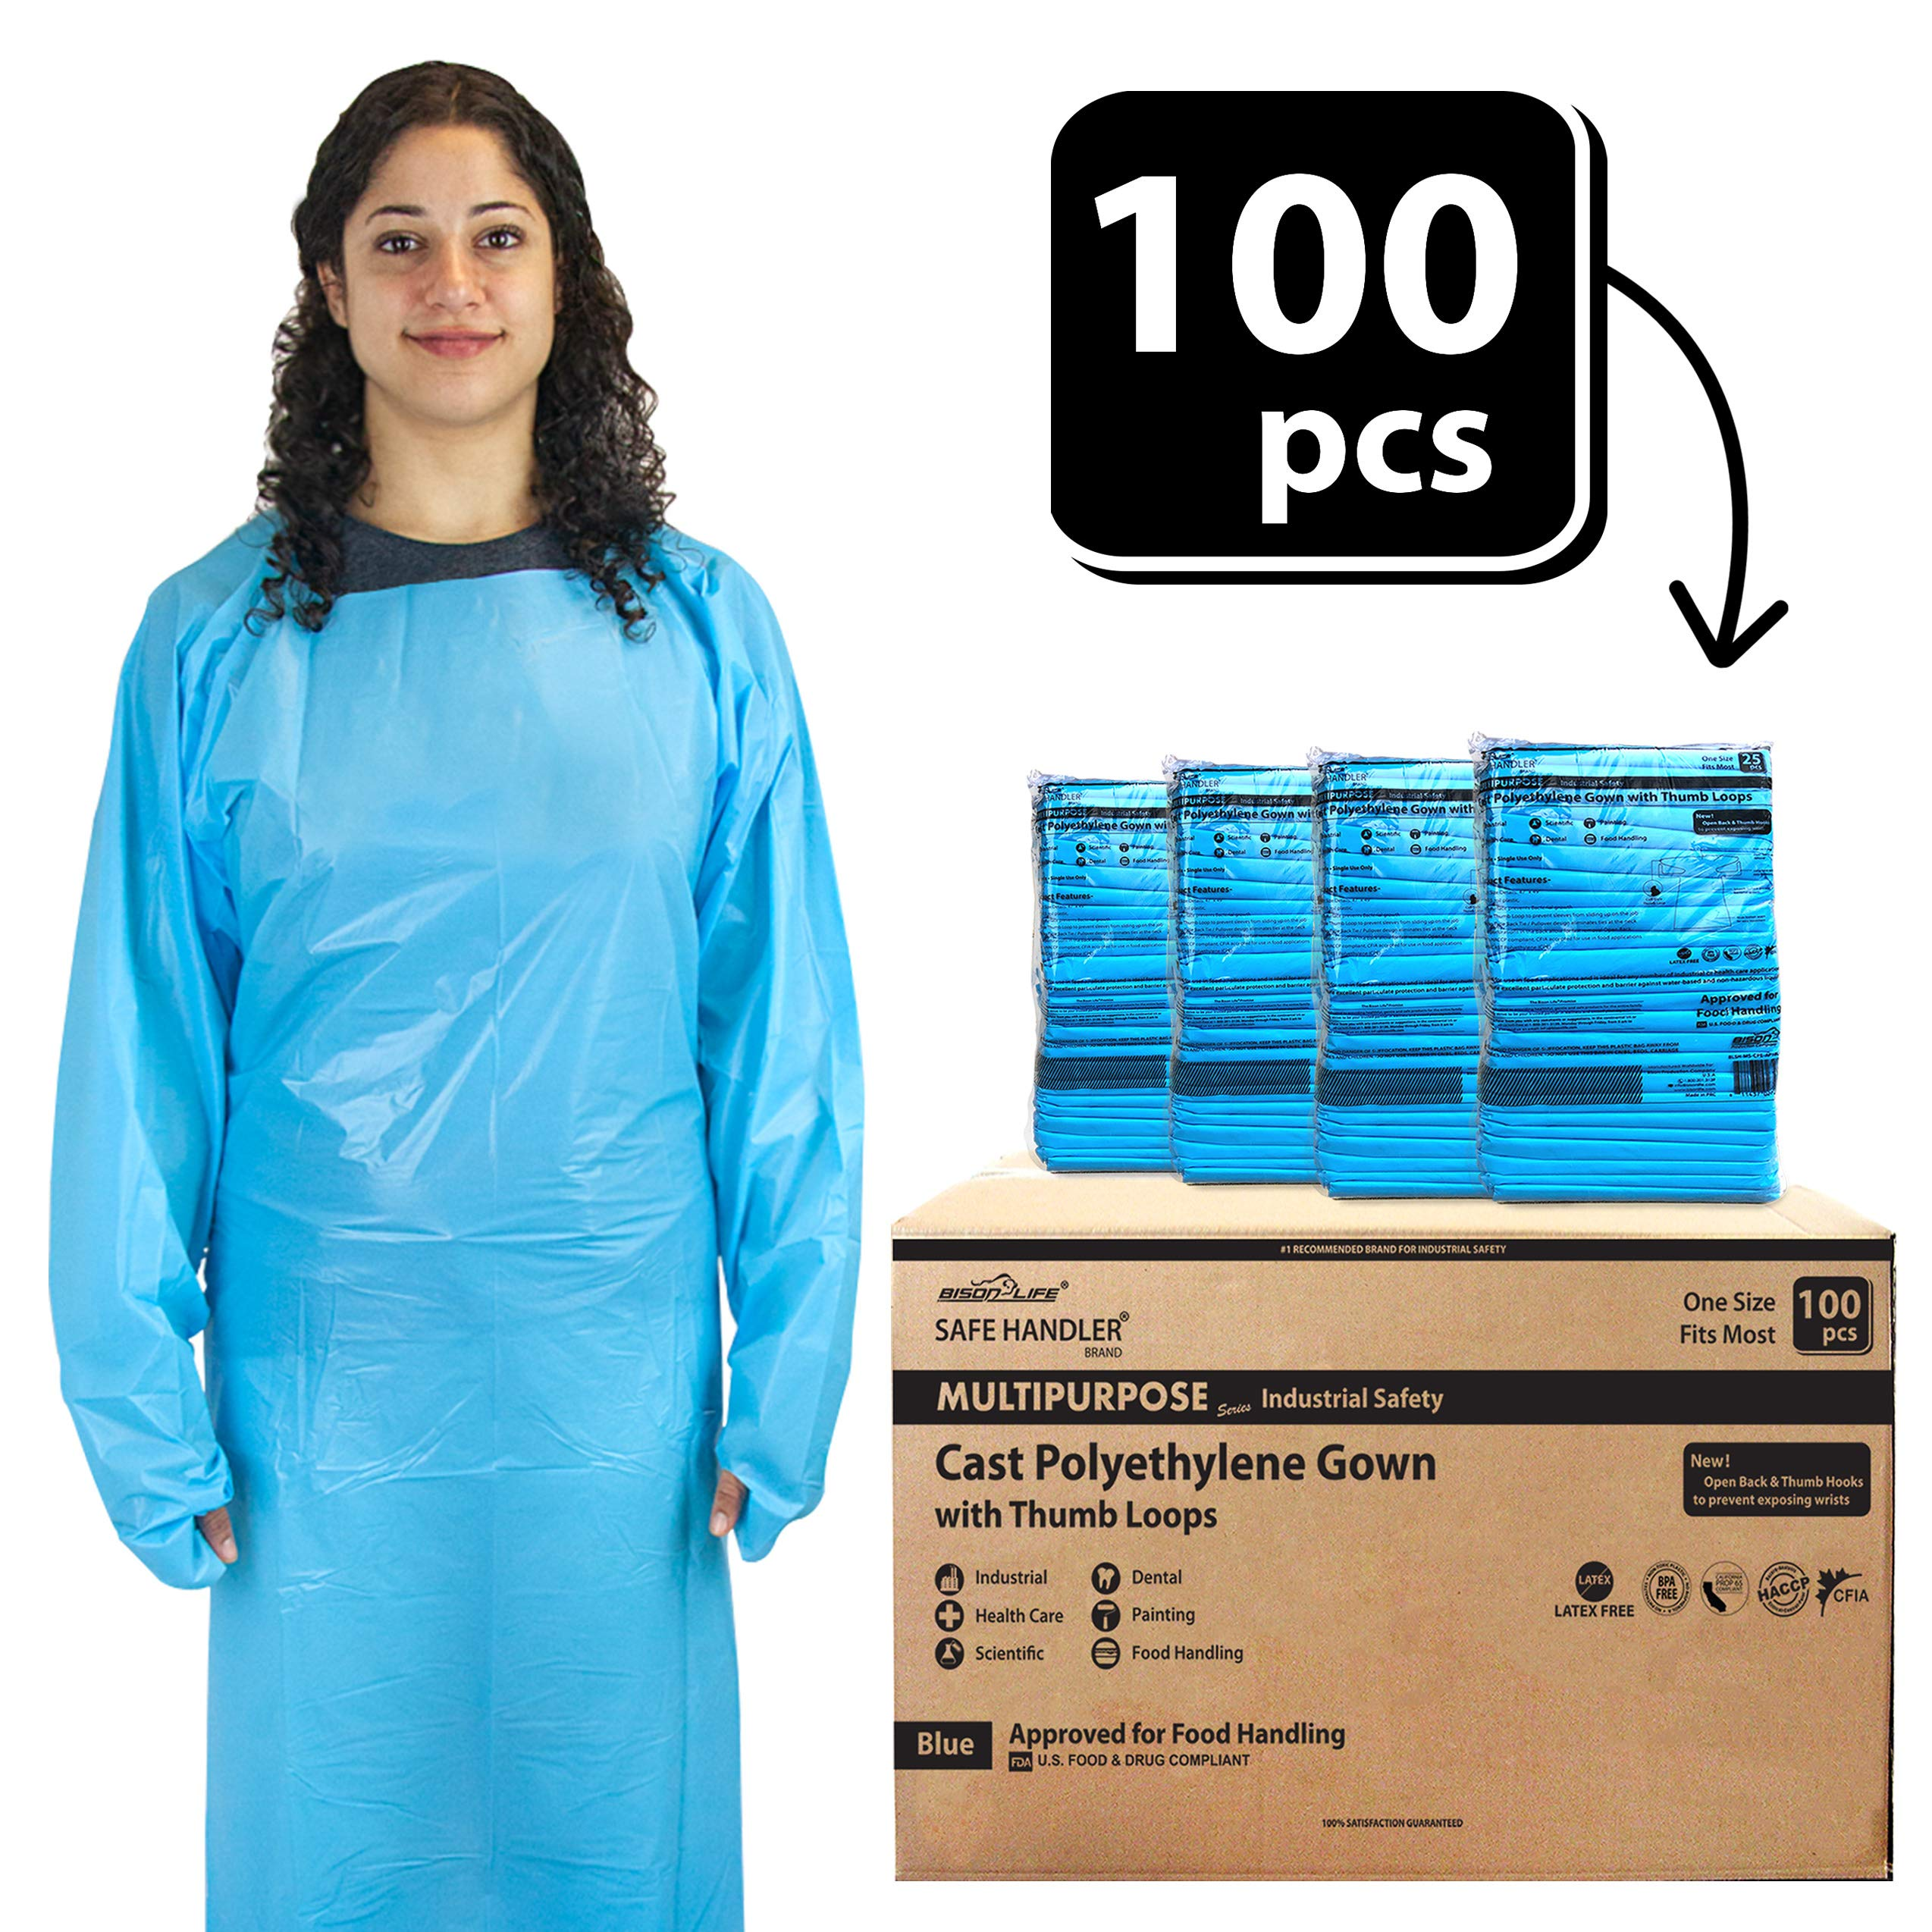 SAFE HANDLER Disposable Sleeve Gown | Open Back with Thumb Loops, 0.5 MIL, Blue, 100 Count by Safe Handler (Image #1)